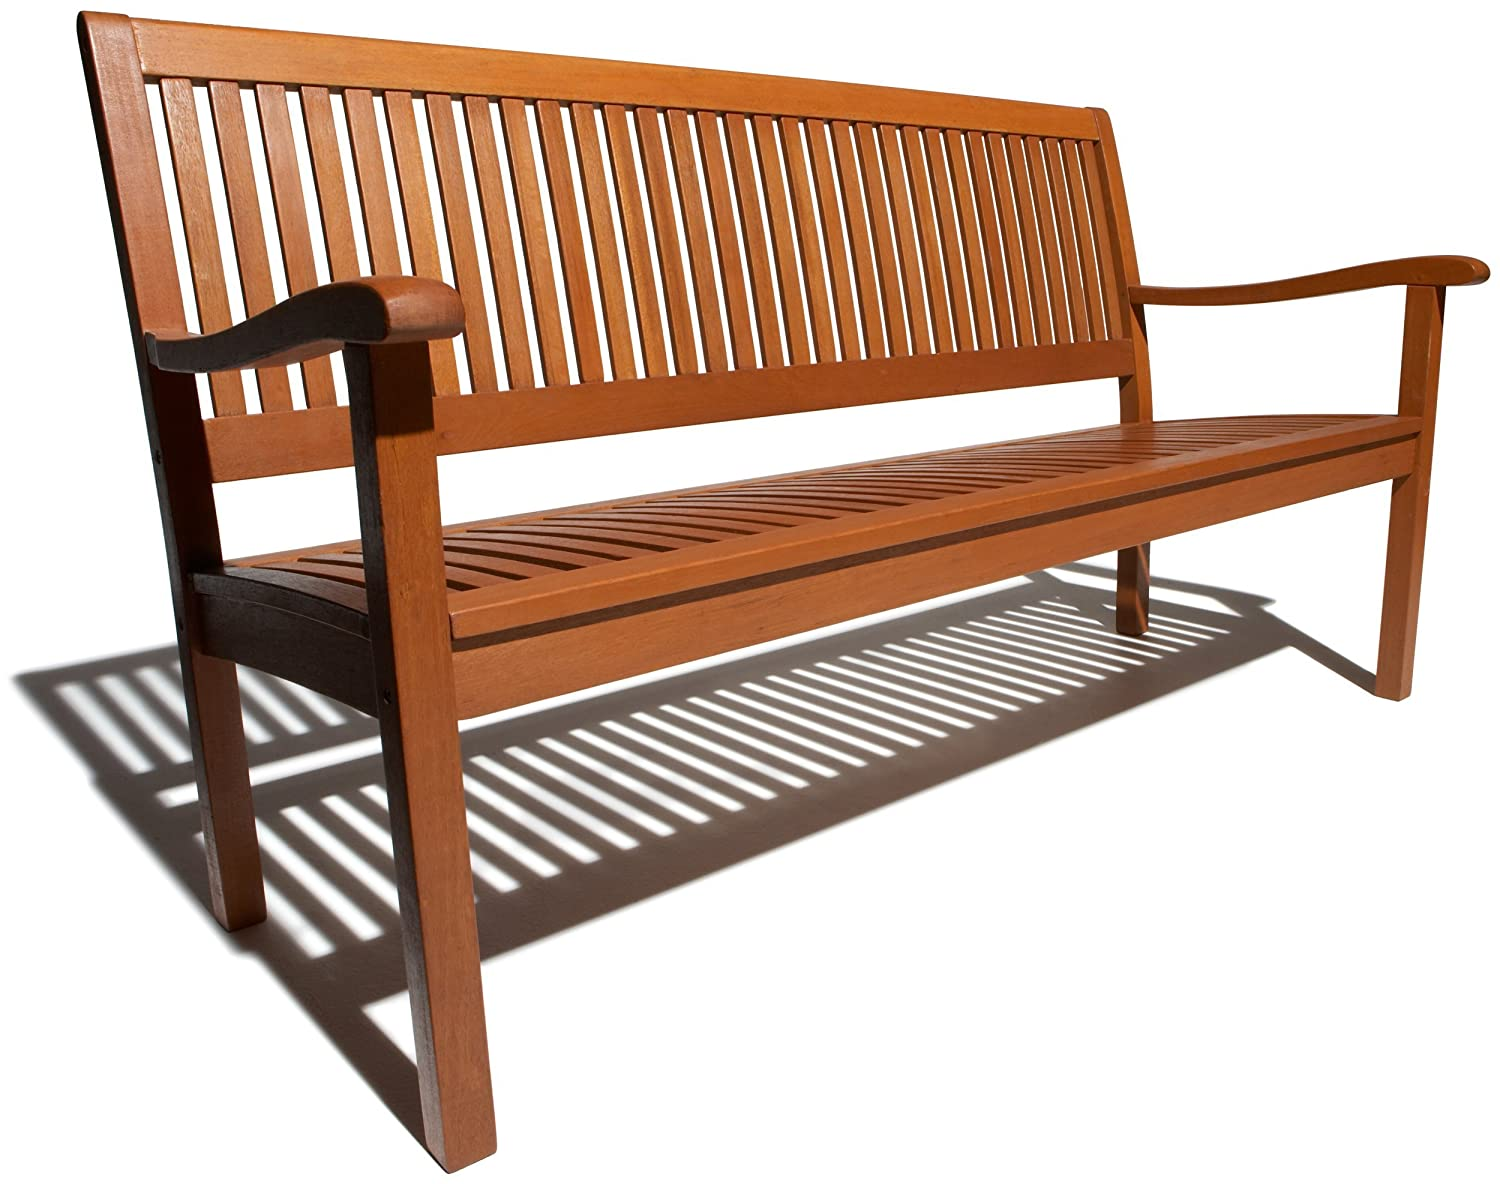 Wood patio bench home decor and furniture deals for Bancas para jardin